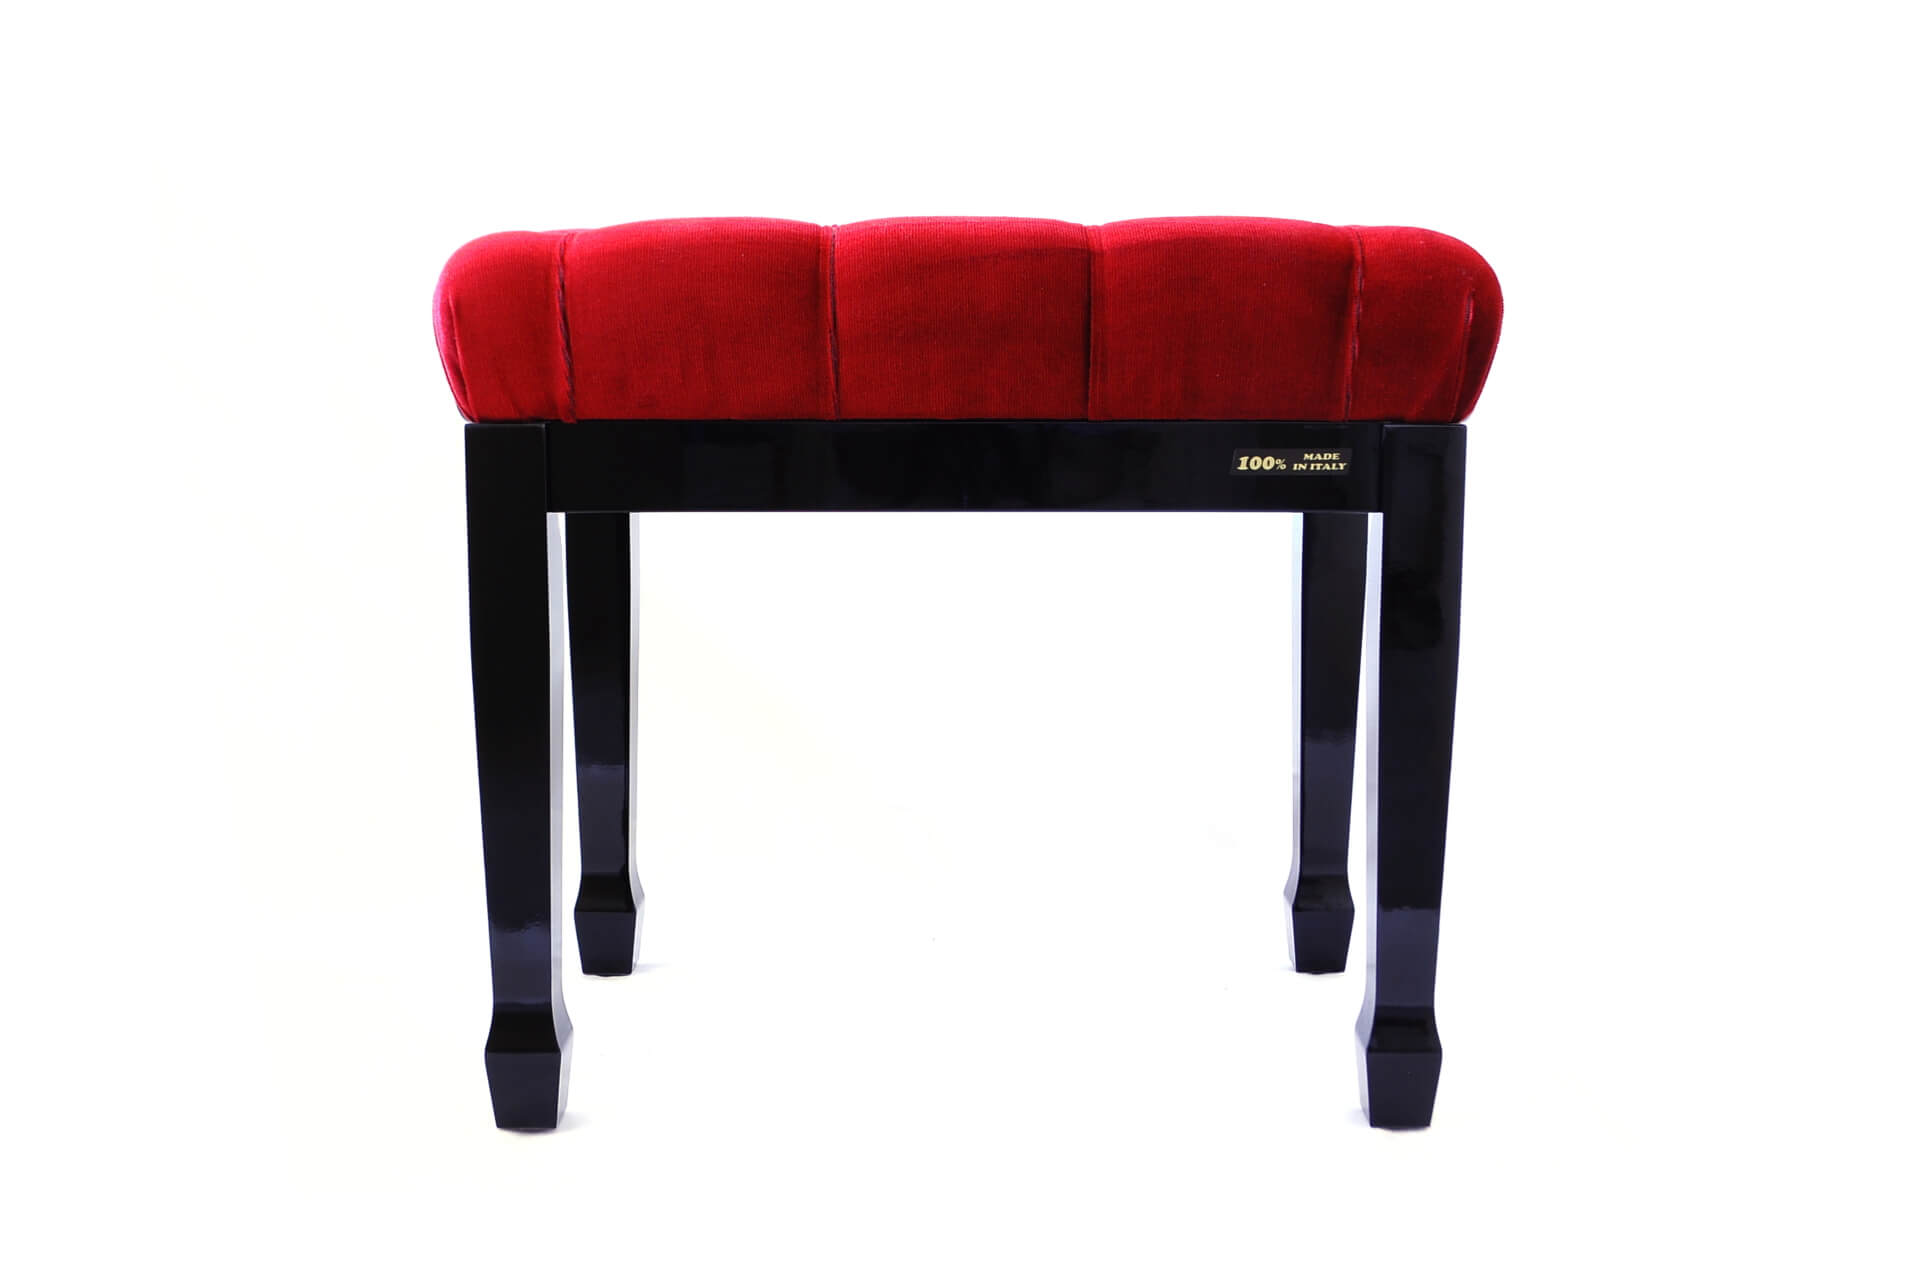 Bench For Concert Piano Puccini Red Velvet